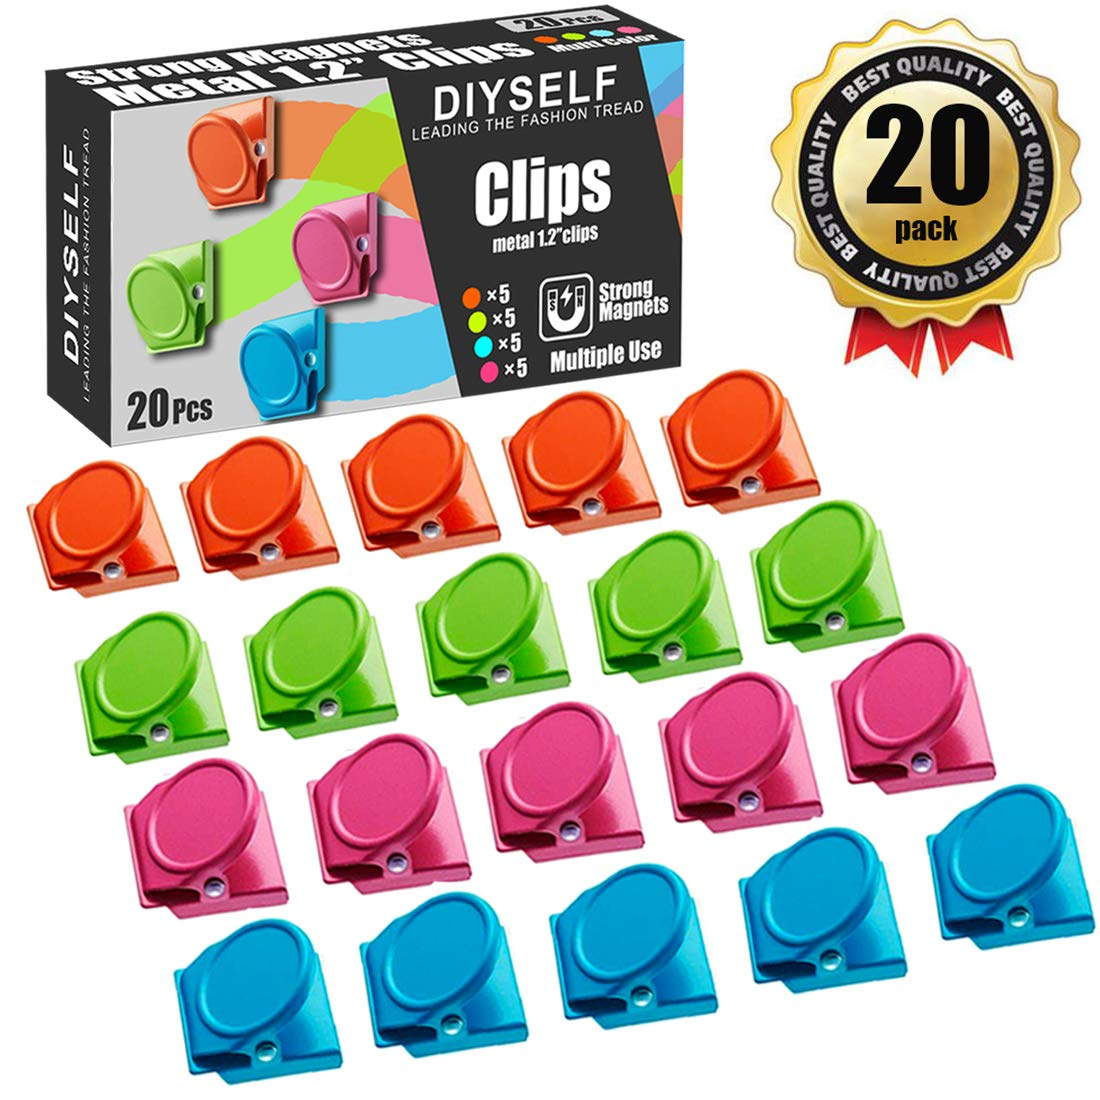 20pcs Magnetic Clips Magnets Clips Refrigerator Magnets Memo Note Clips Whiteboard Wall Magnetic Stainless Steel Clip Magnets